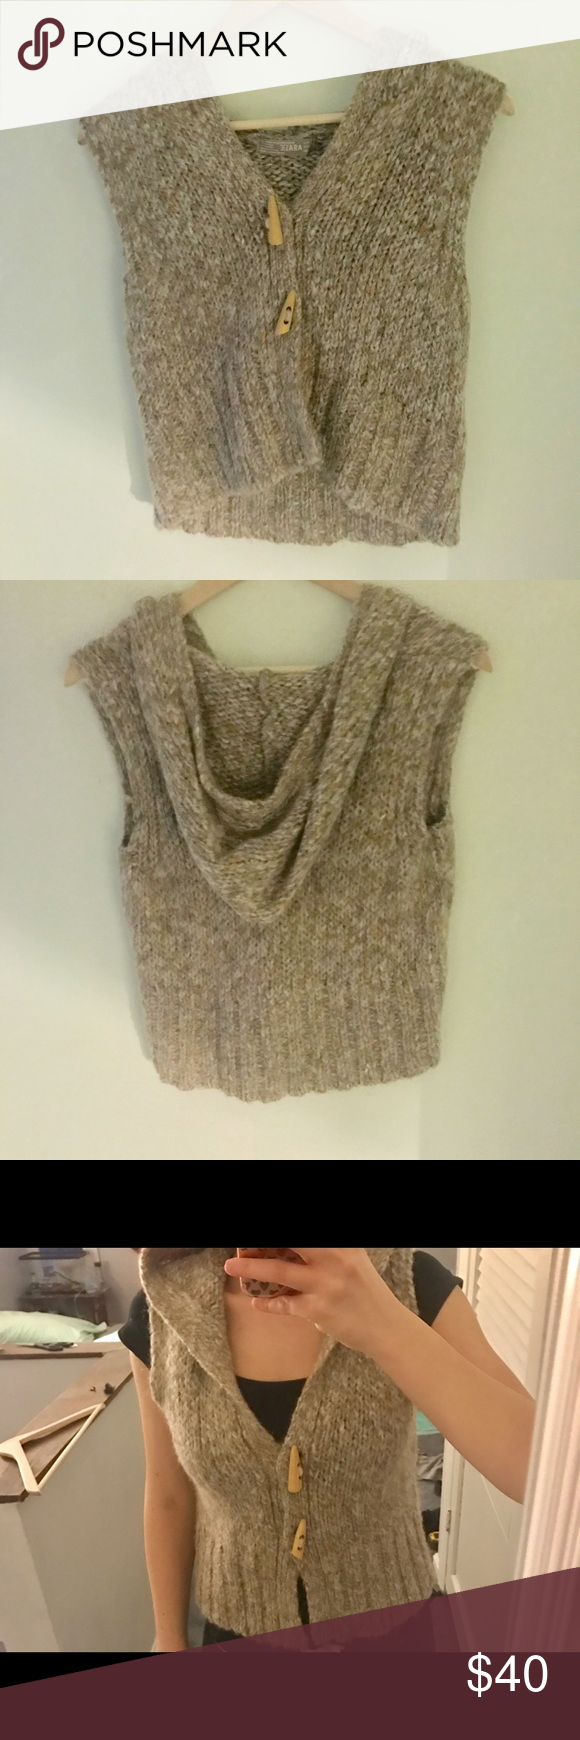 Zara sweater vest Super cute Zara sweater short vest!! Has wooden ...